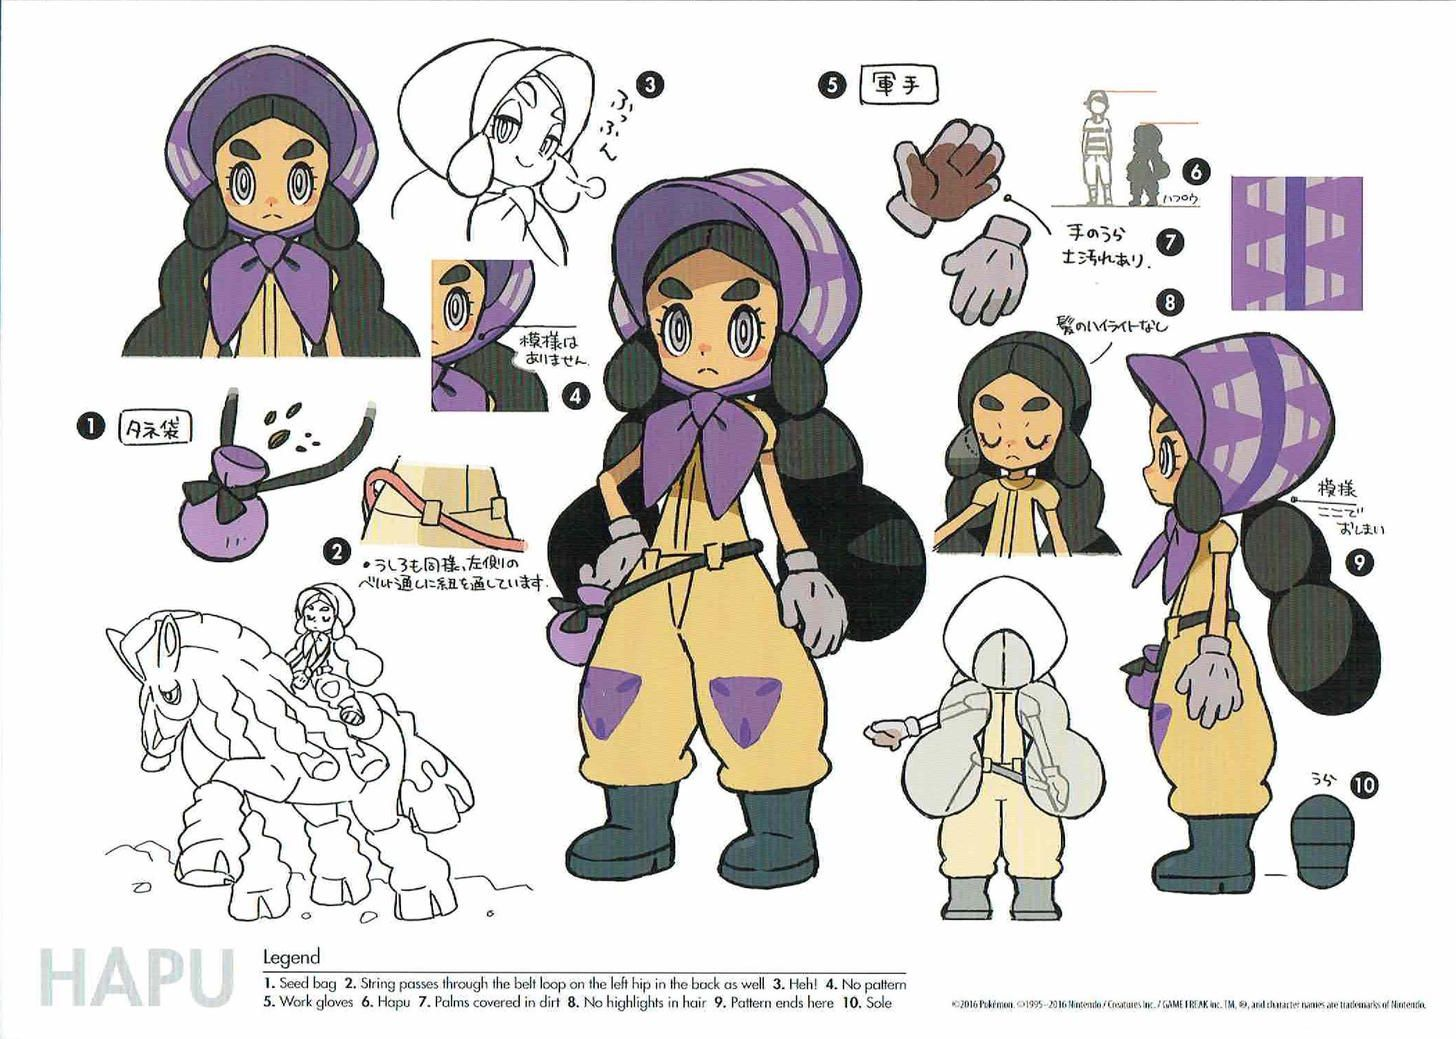 Pokemon sunmoon character concept arts part 2 character concept pokemon sunmoon character concept arts part 2 biocorpaavc Images